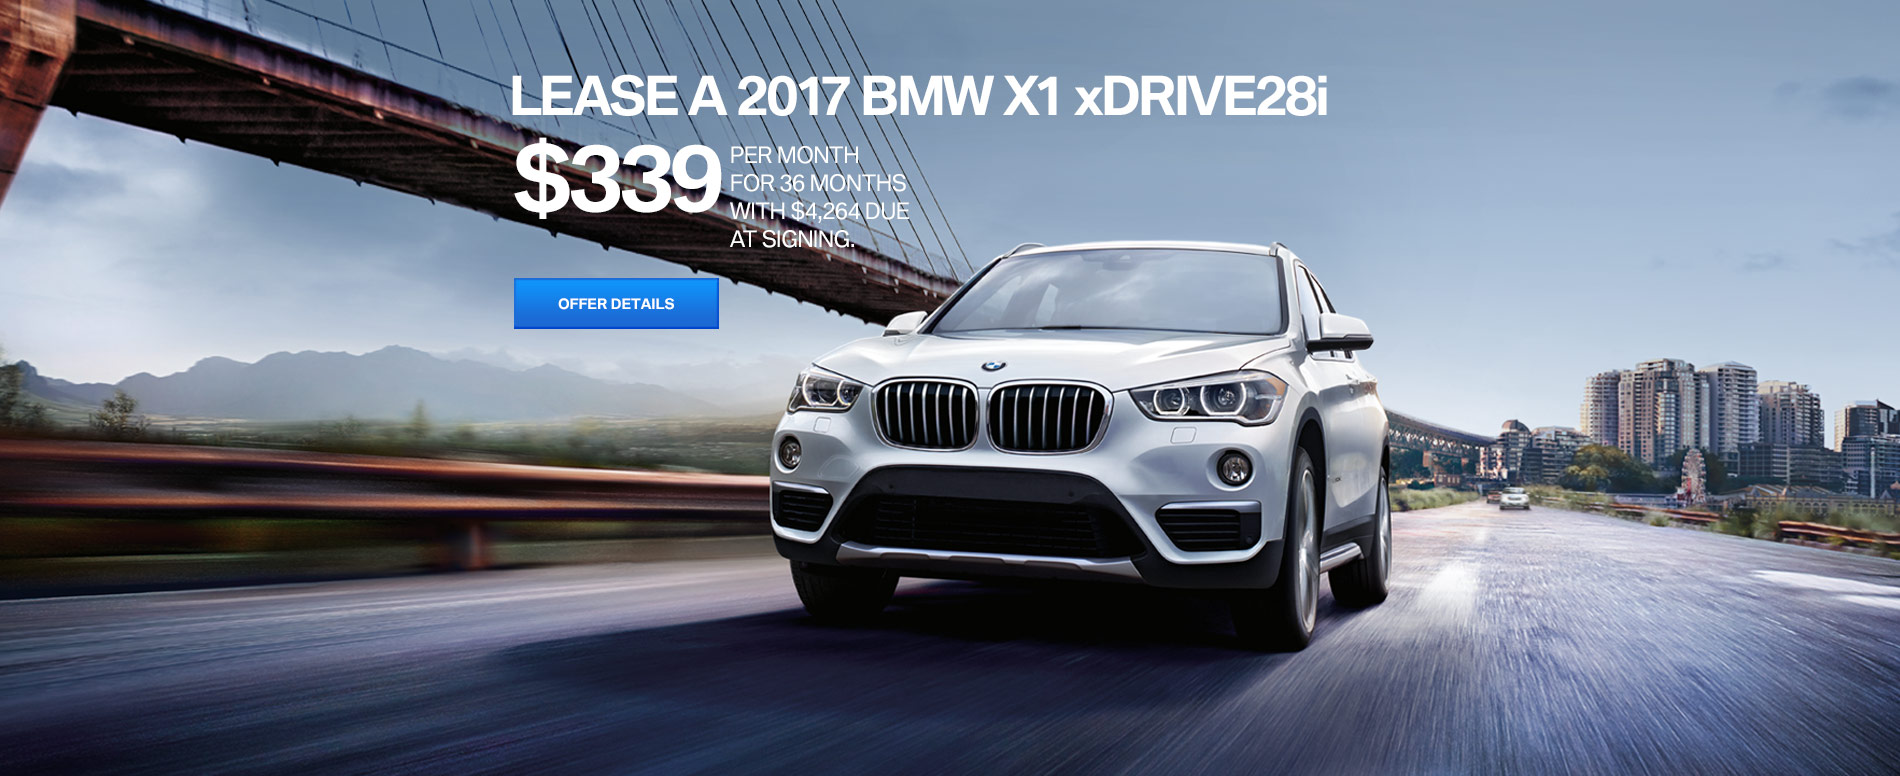 X1 xDrive28i Lease for $339/mo for 36 months